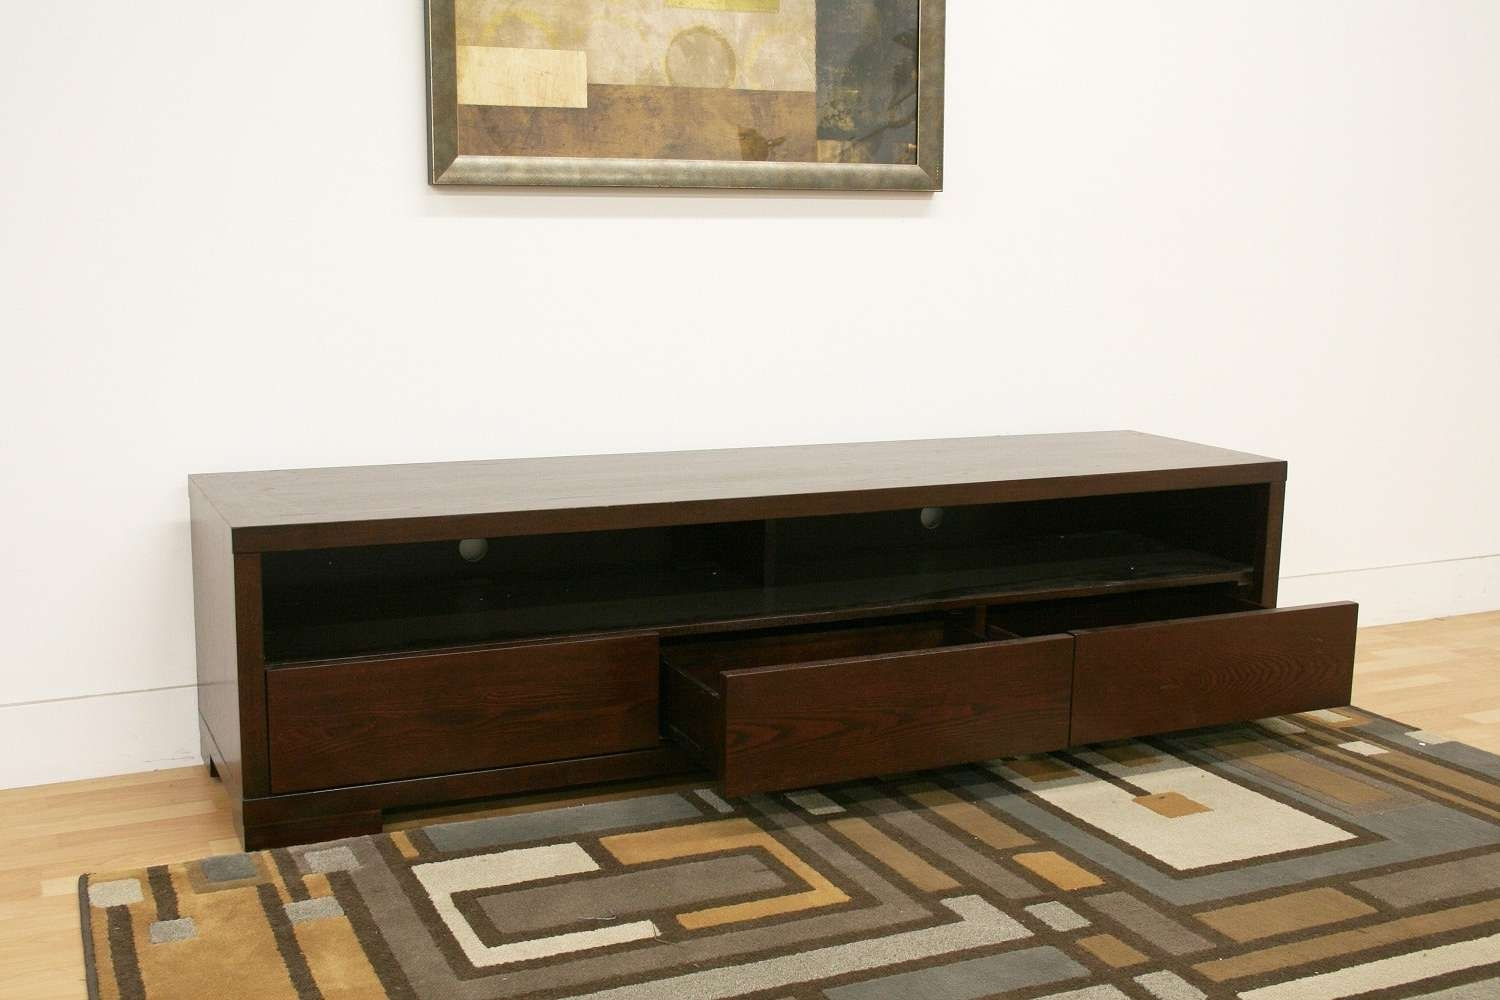 Console Tables : Simple Old Low Profile Media Console With Drawer Pertaining To Modern Low Profile Tv Stands (View 4 of 15)